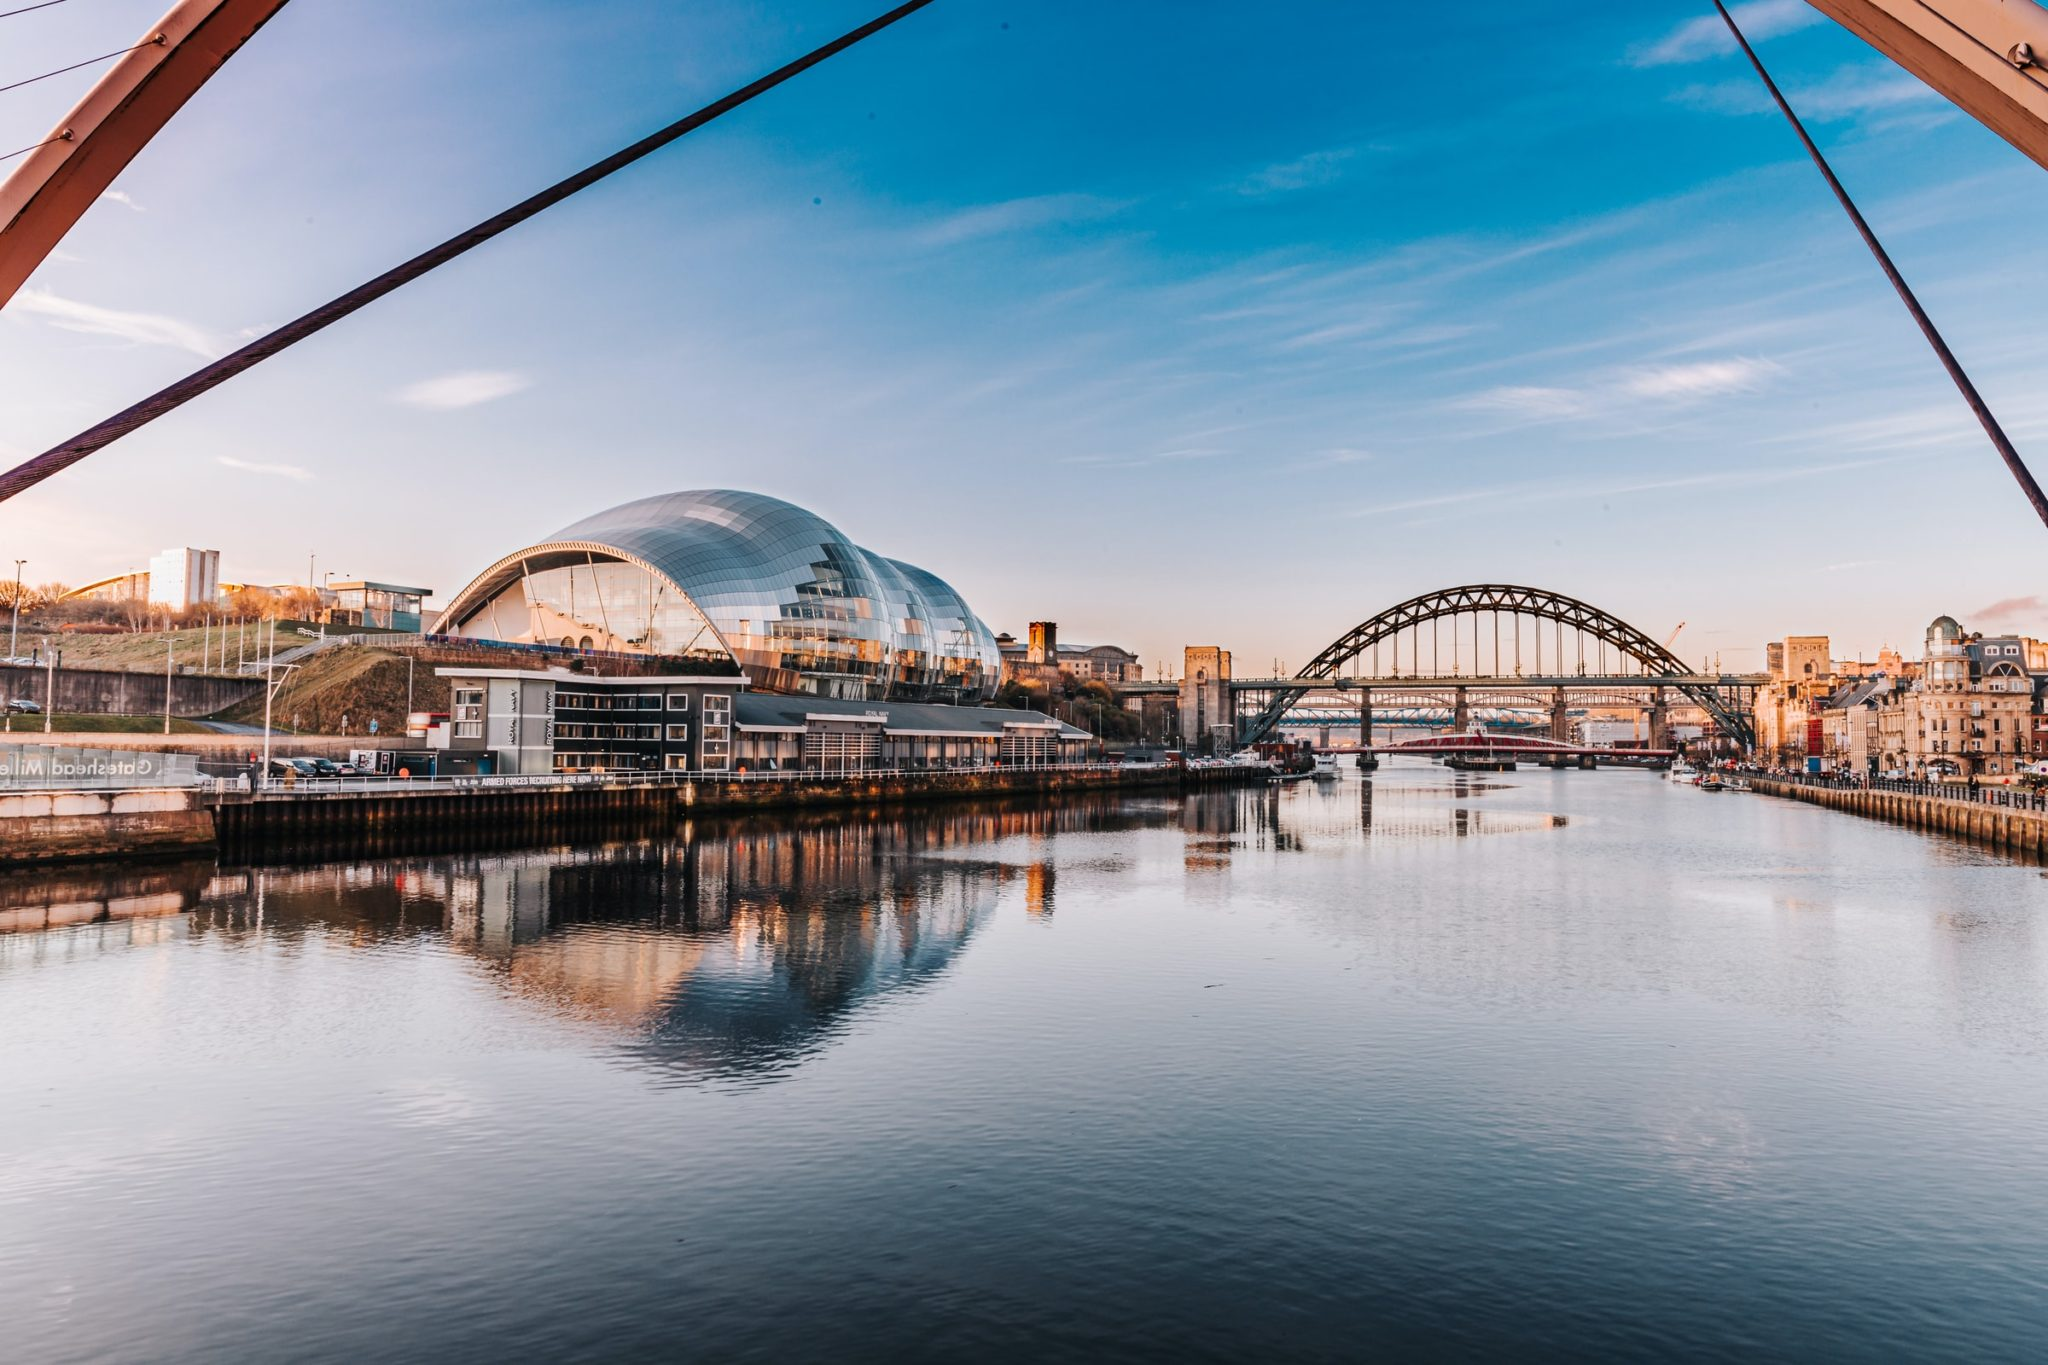 The Best Bars In Newcastle. Photo by Ryan Booth on Unsplash